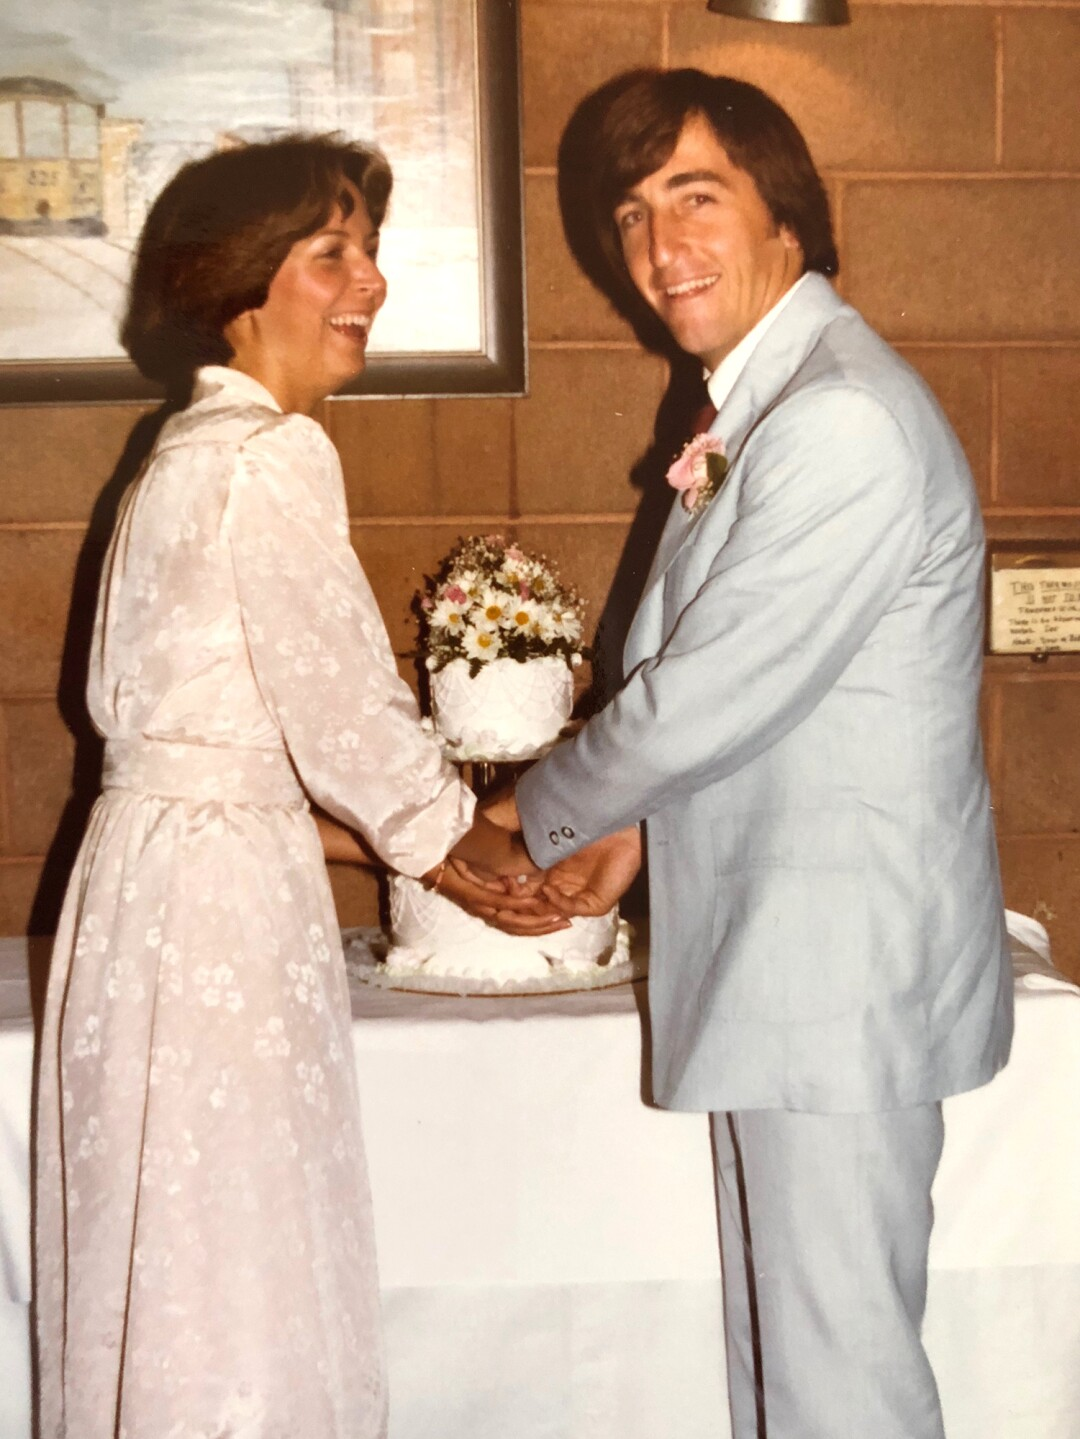 Bob Hardwick at his marriage to Gay, less than a year after the attack.